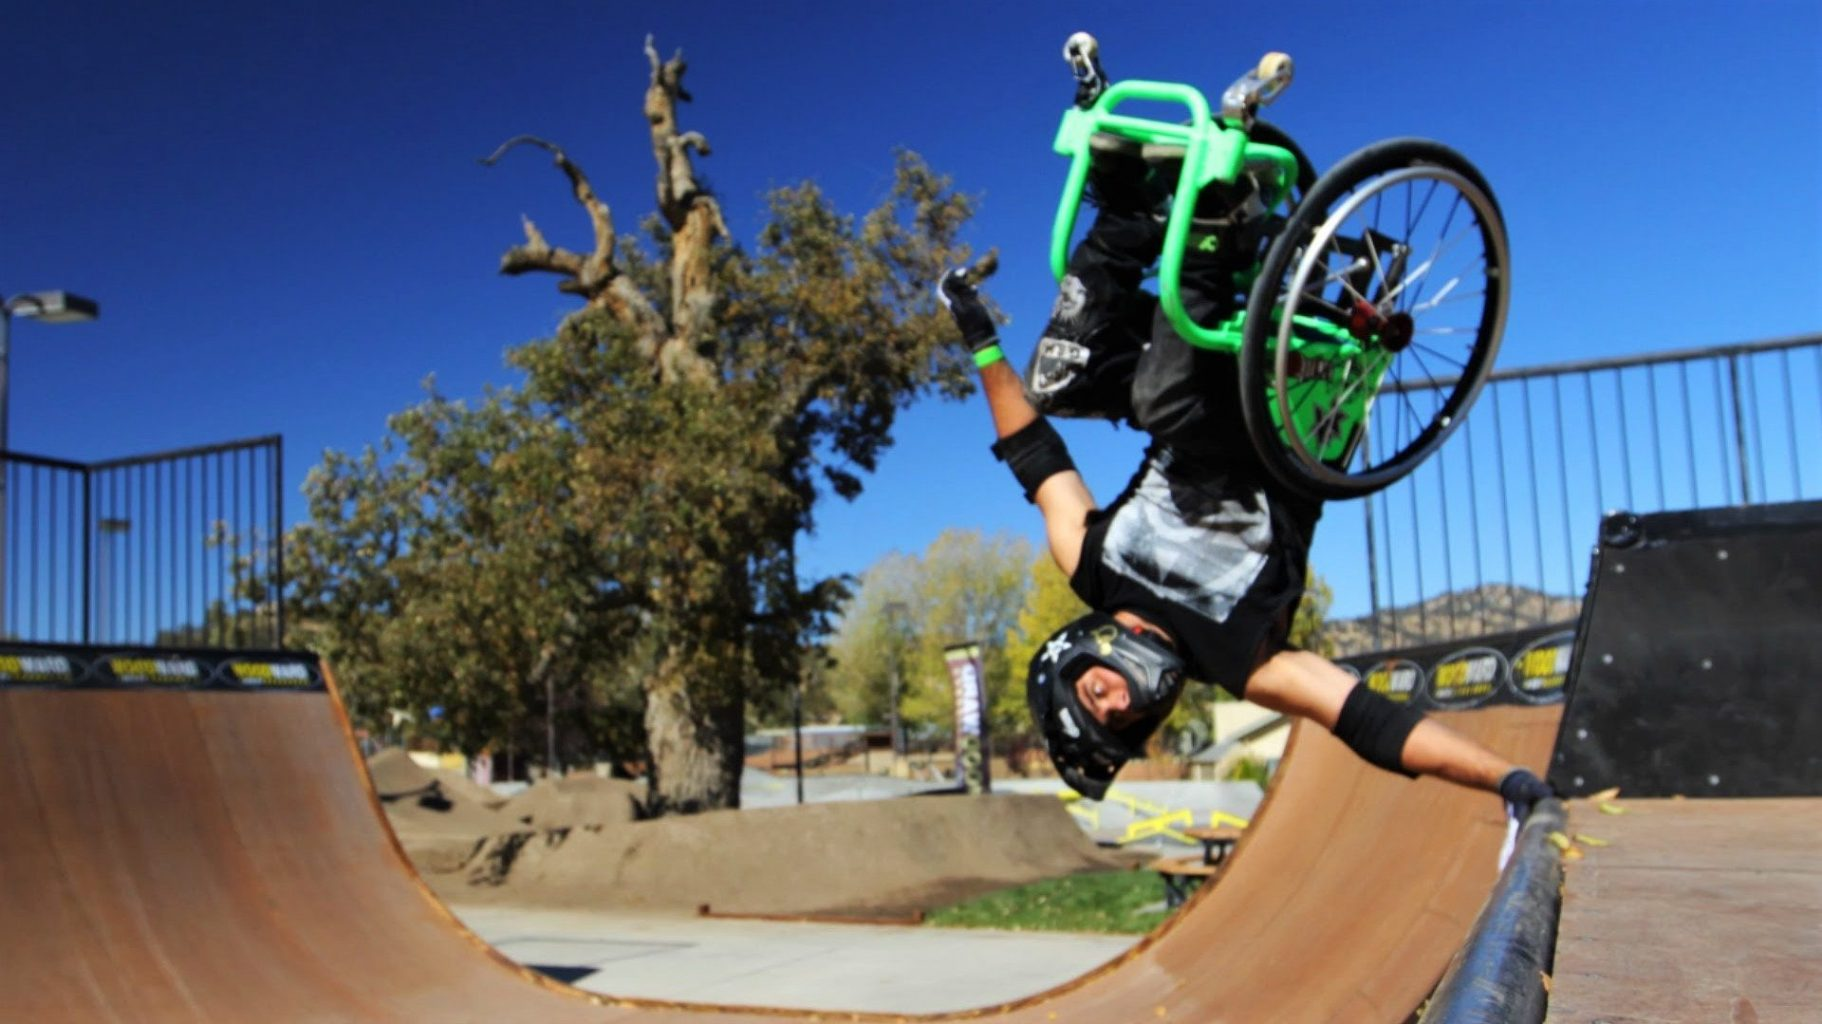 Image: Aaron Fotheringham, the founder of wheelchair motor-cross, in his wheelchair hand planting on rail.